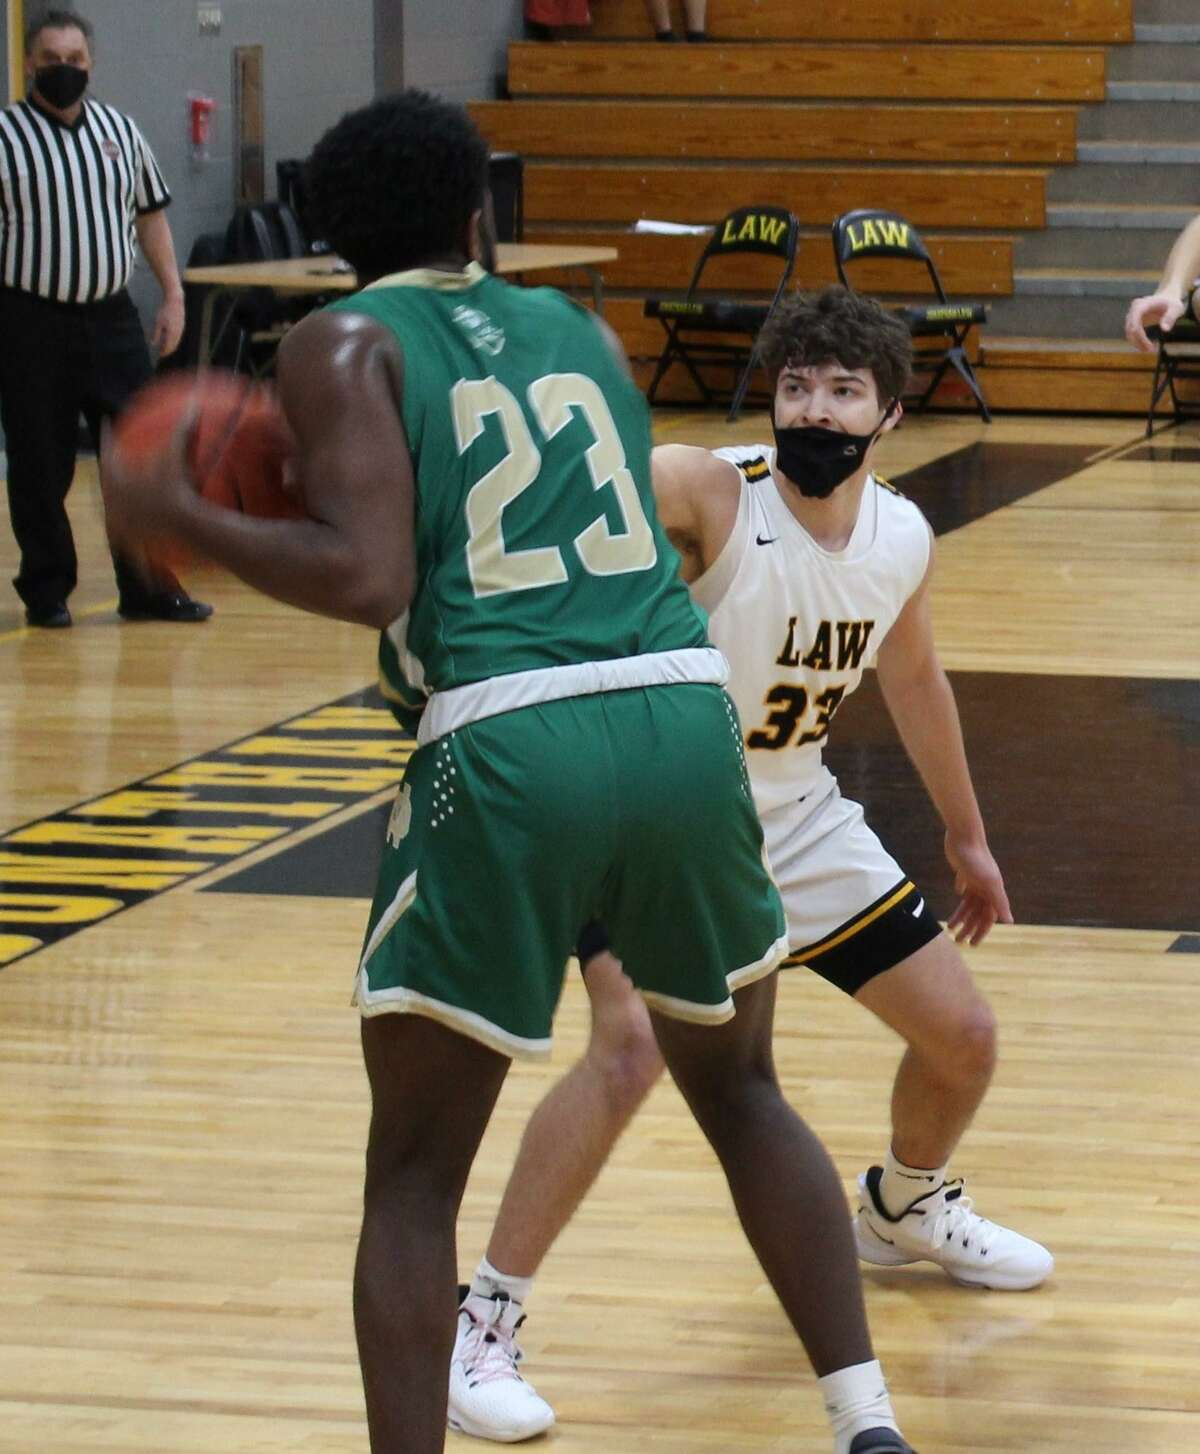 Brian Felag defends Notre Dame's James Rawlins in Law's 46-43 win over the Green Knights.